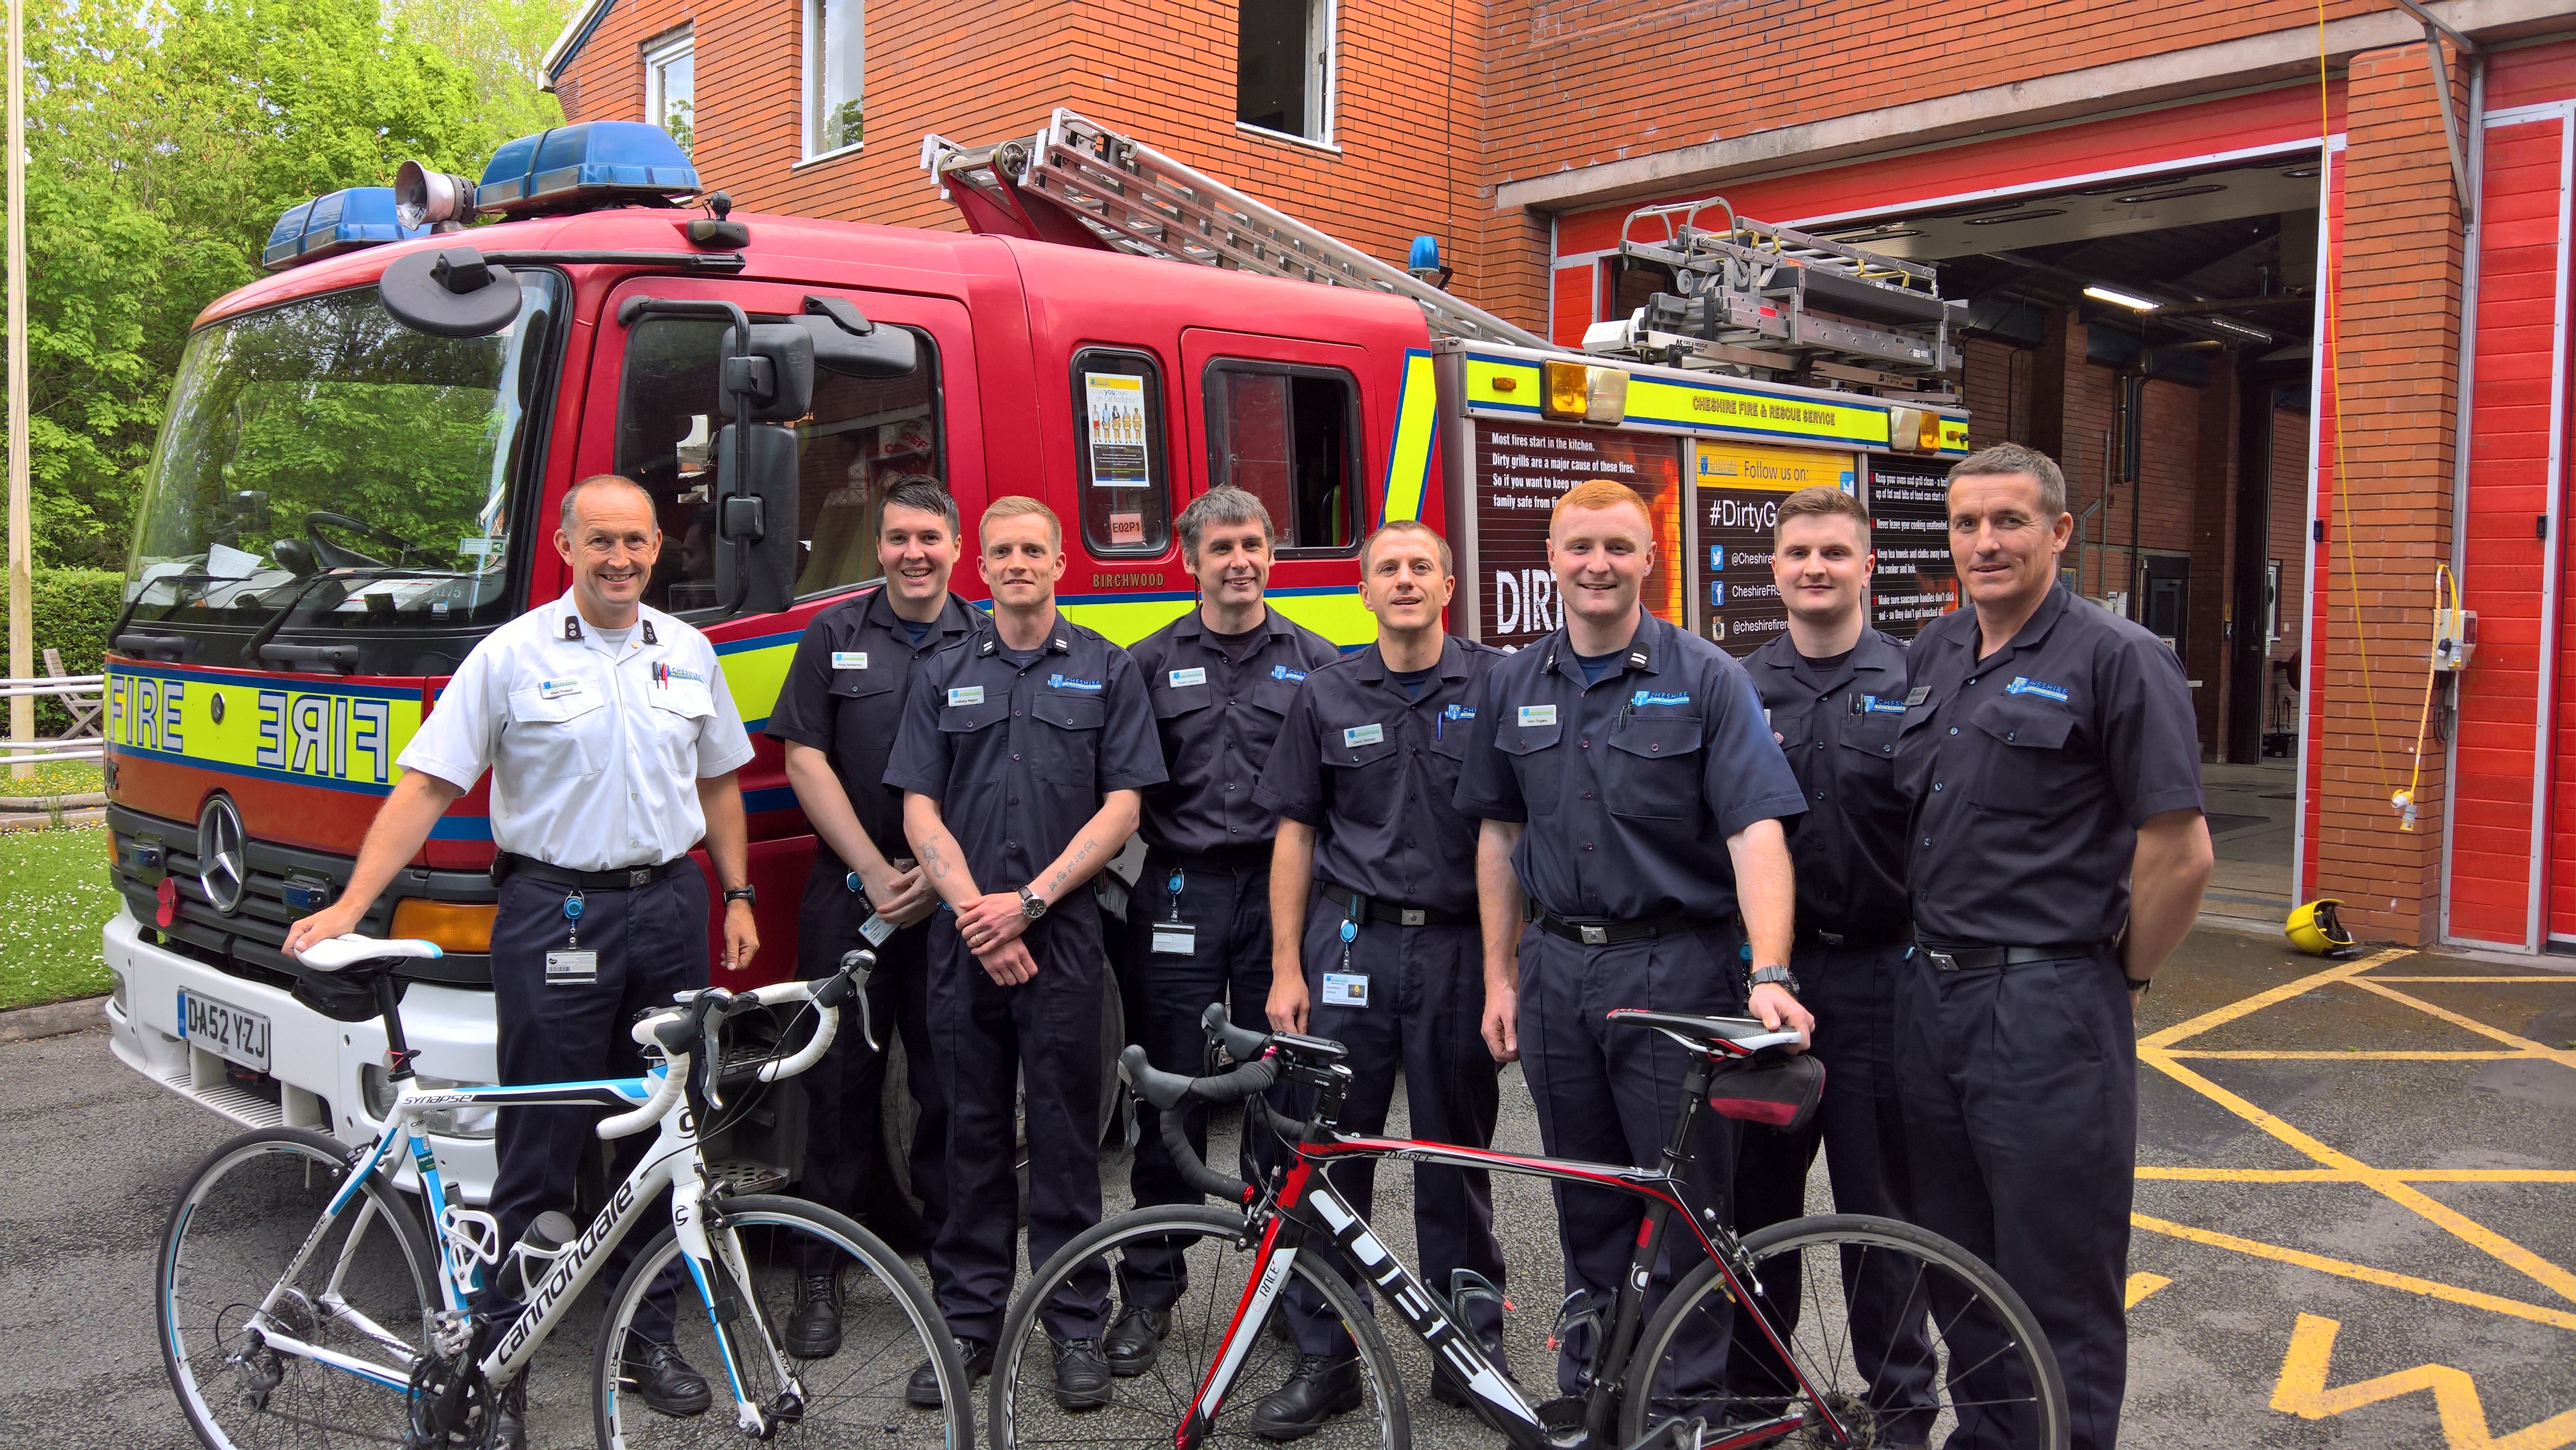 Fire crews complete charity bike ride